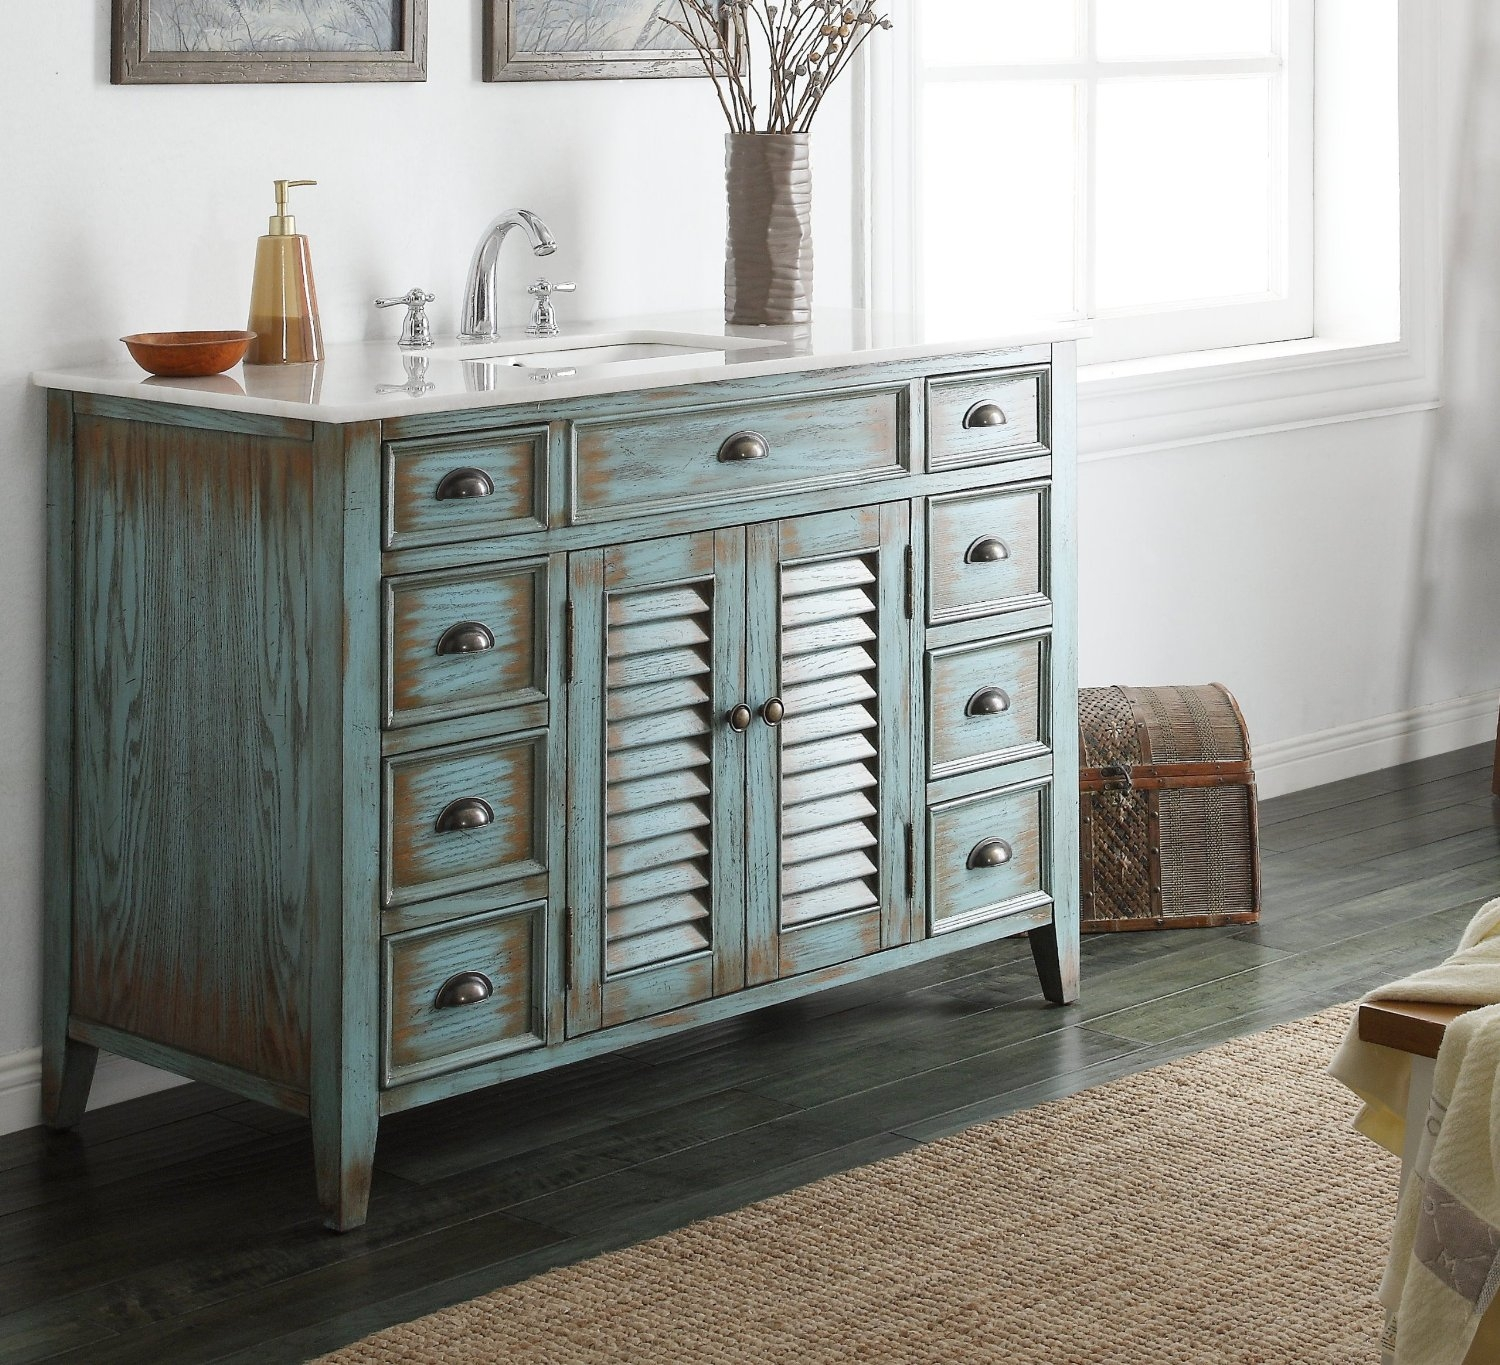 Distressed Bathroom Vanity Units